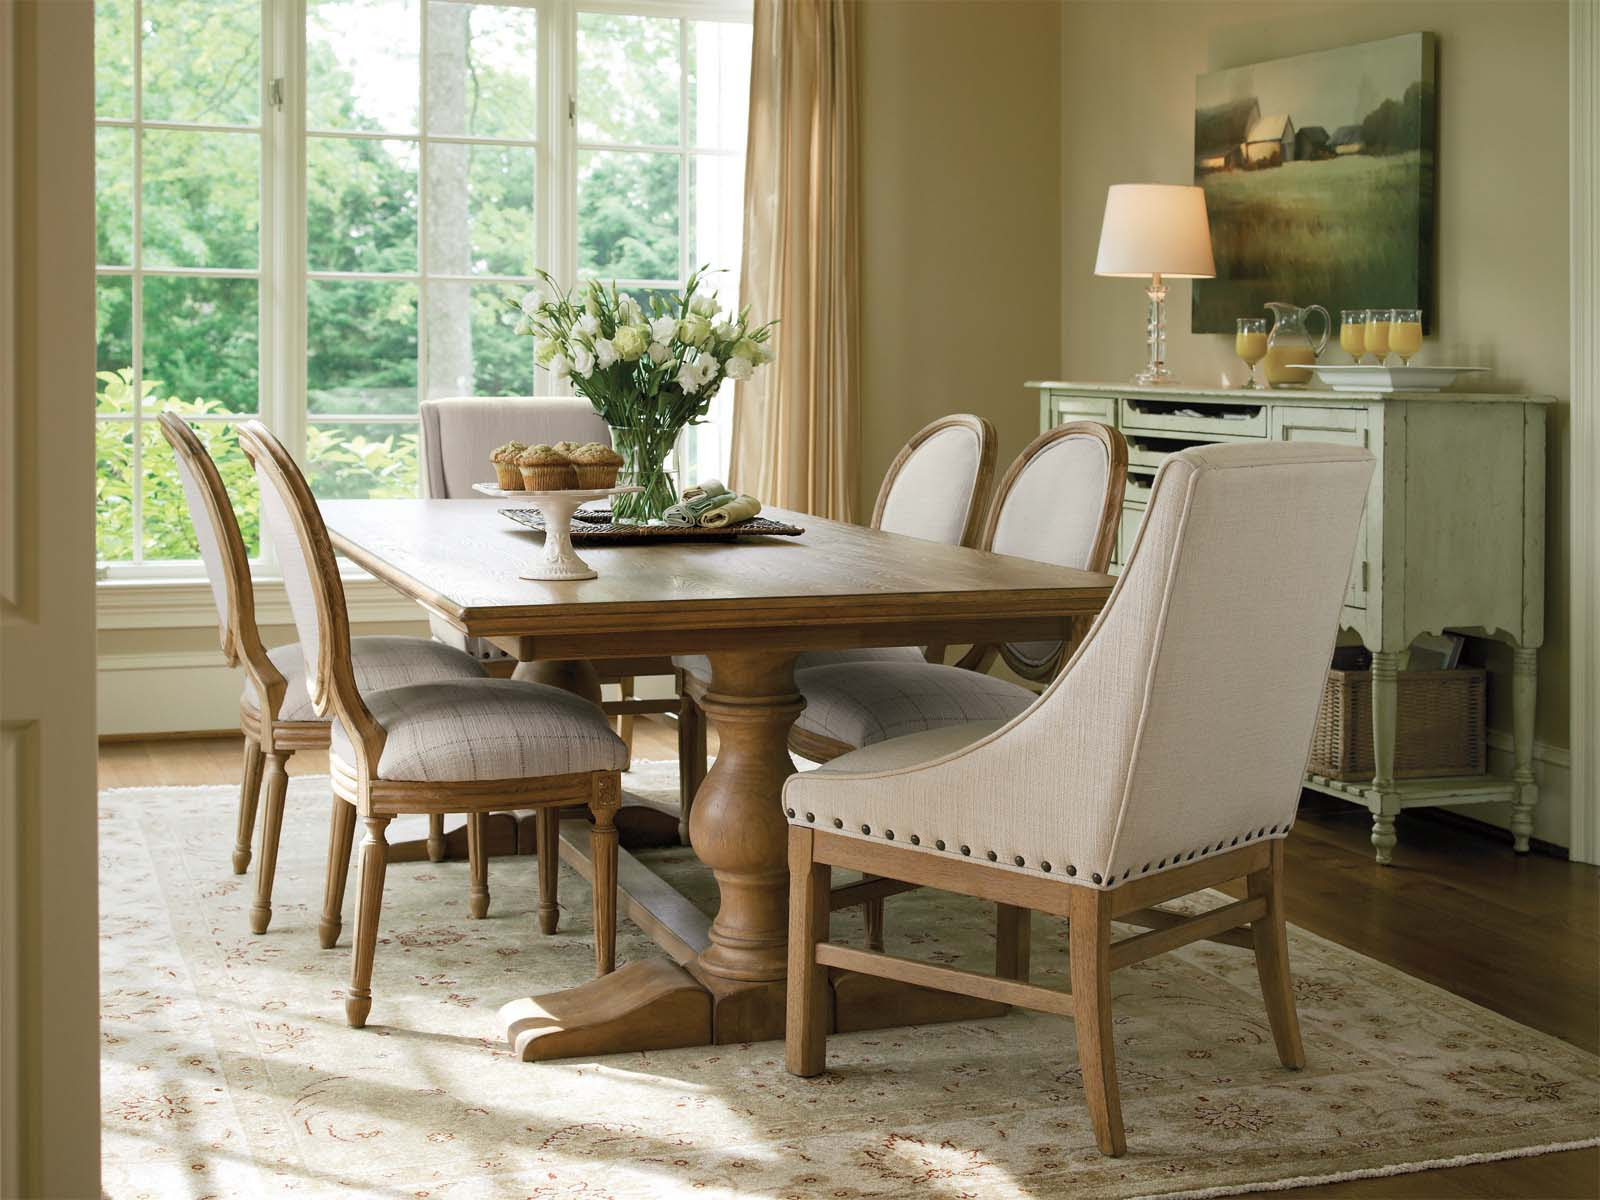 Timelessly Charming Farmhouse Style Furniture for Your ...